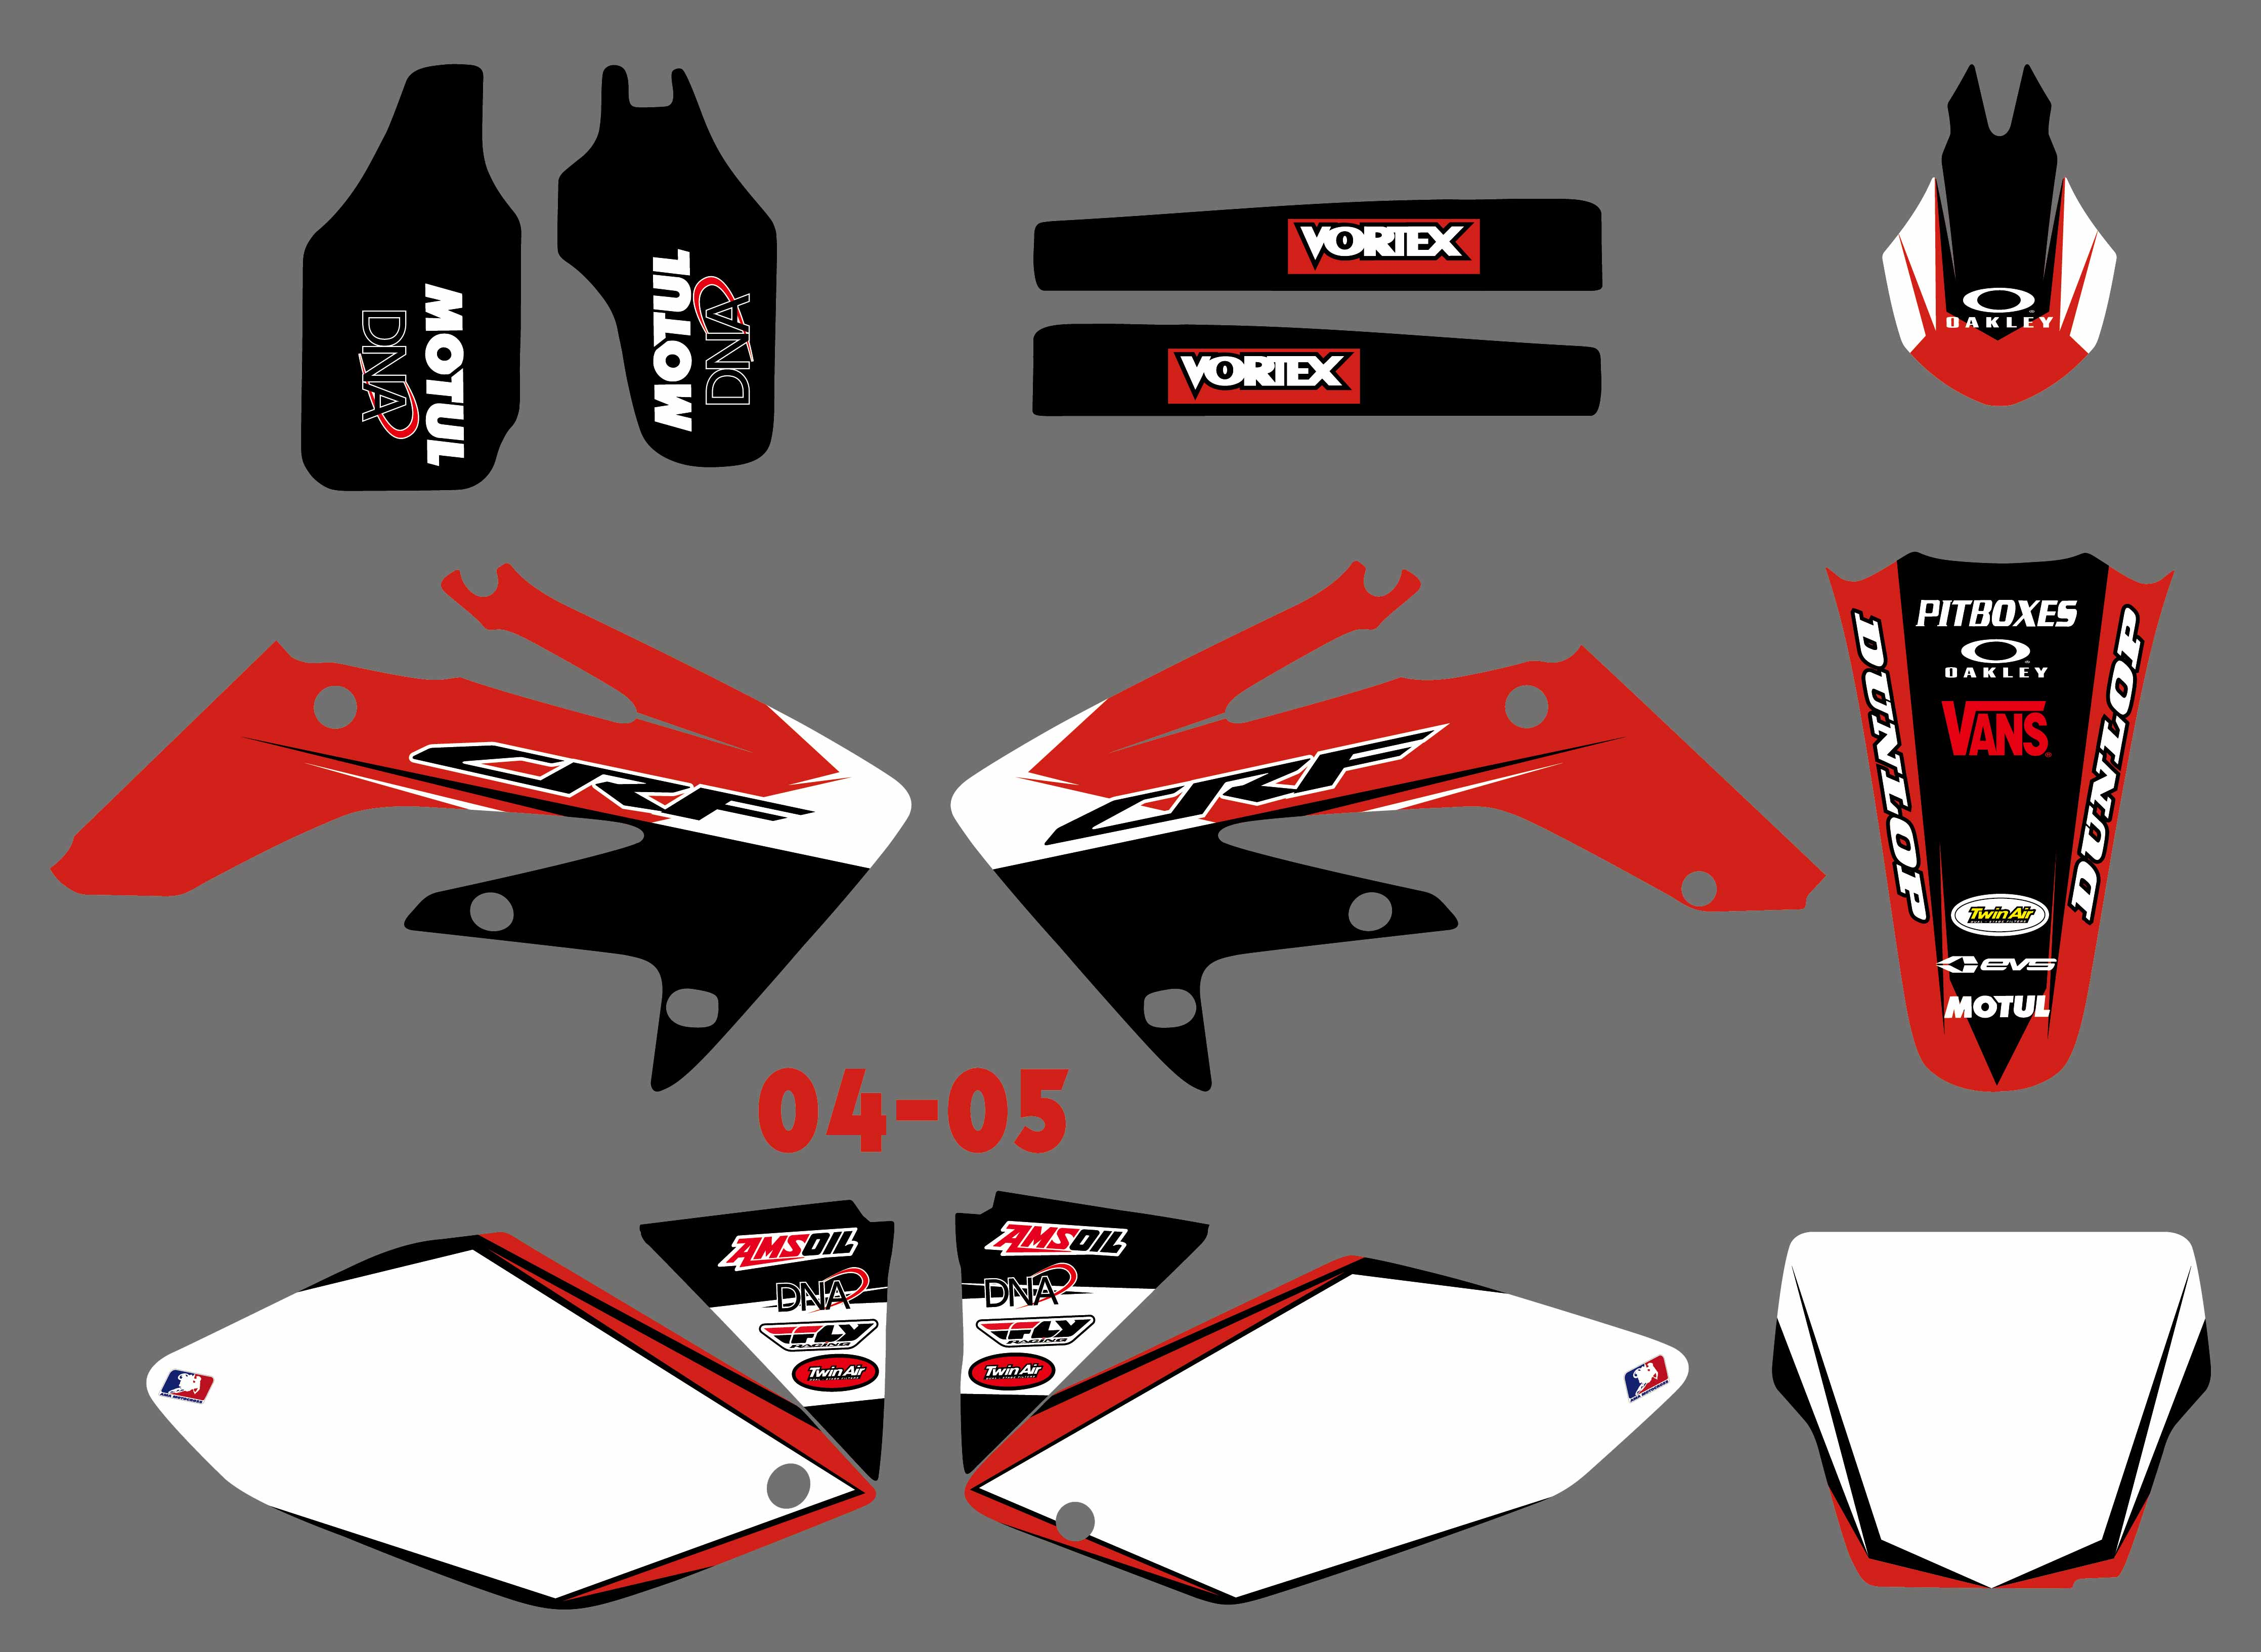 New Style TEAM GRAPHICS & BACKGROUNDS DECALS STICKERS Kits For Honda CRF250 CRF250R 2004 2005 2006 2007 2008 2009 CRF 250 250R nicecnc cnc folding tip gear pedal shift lever for honda crf250r 2004 2009 crf250x 2004 2017 crf 250r 250x